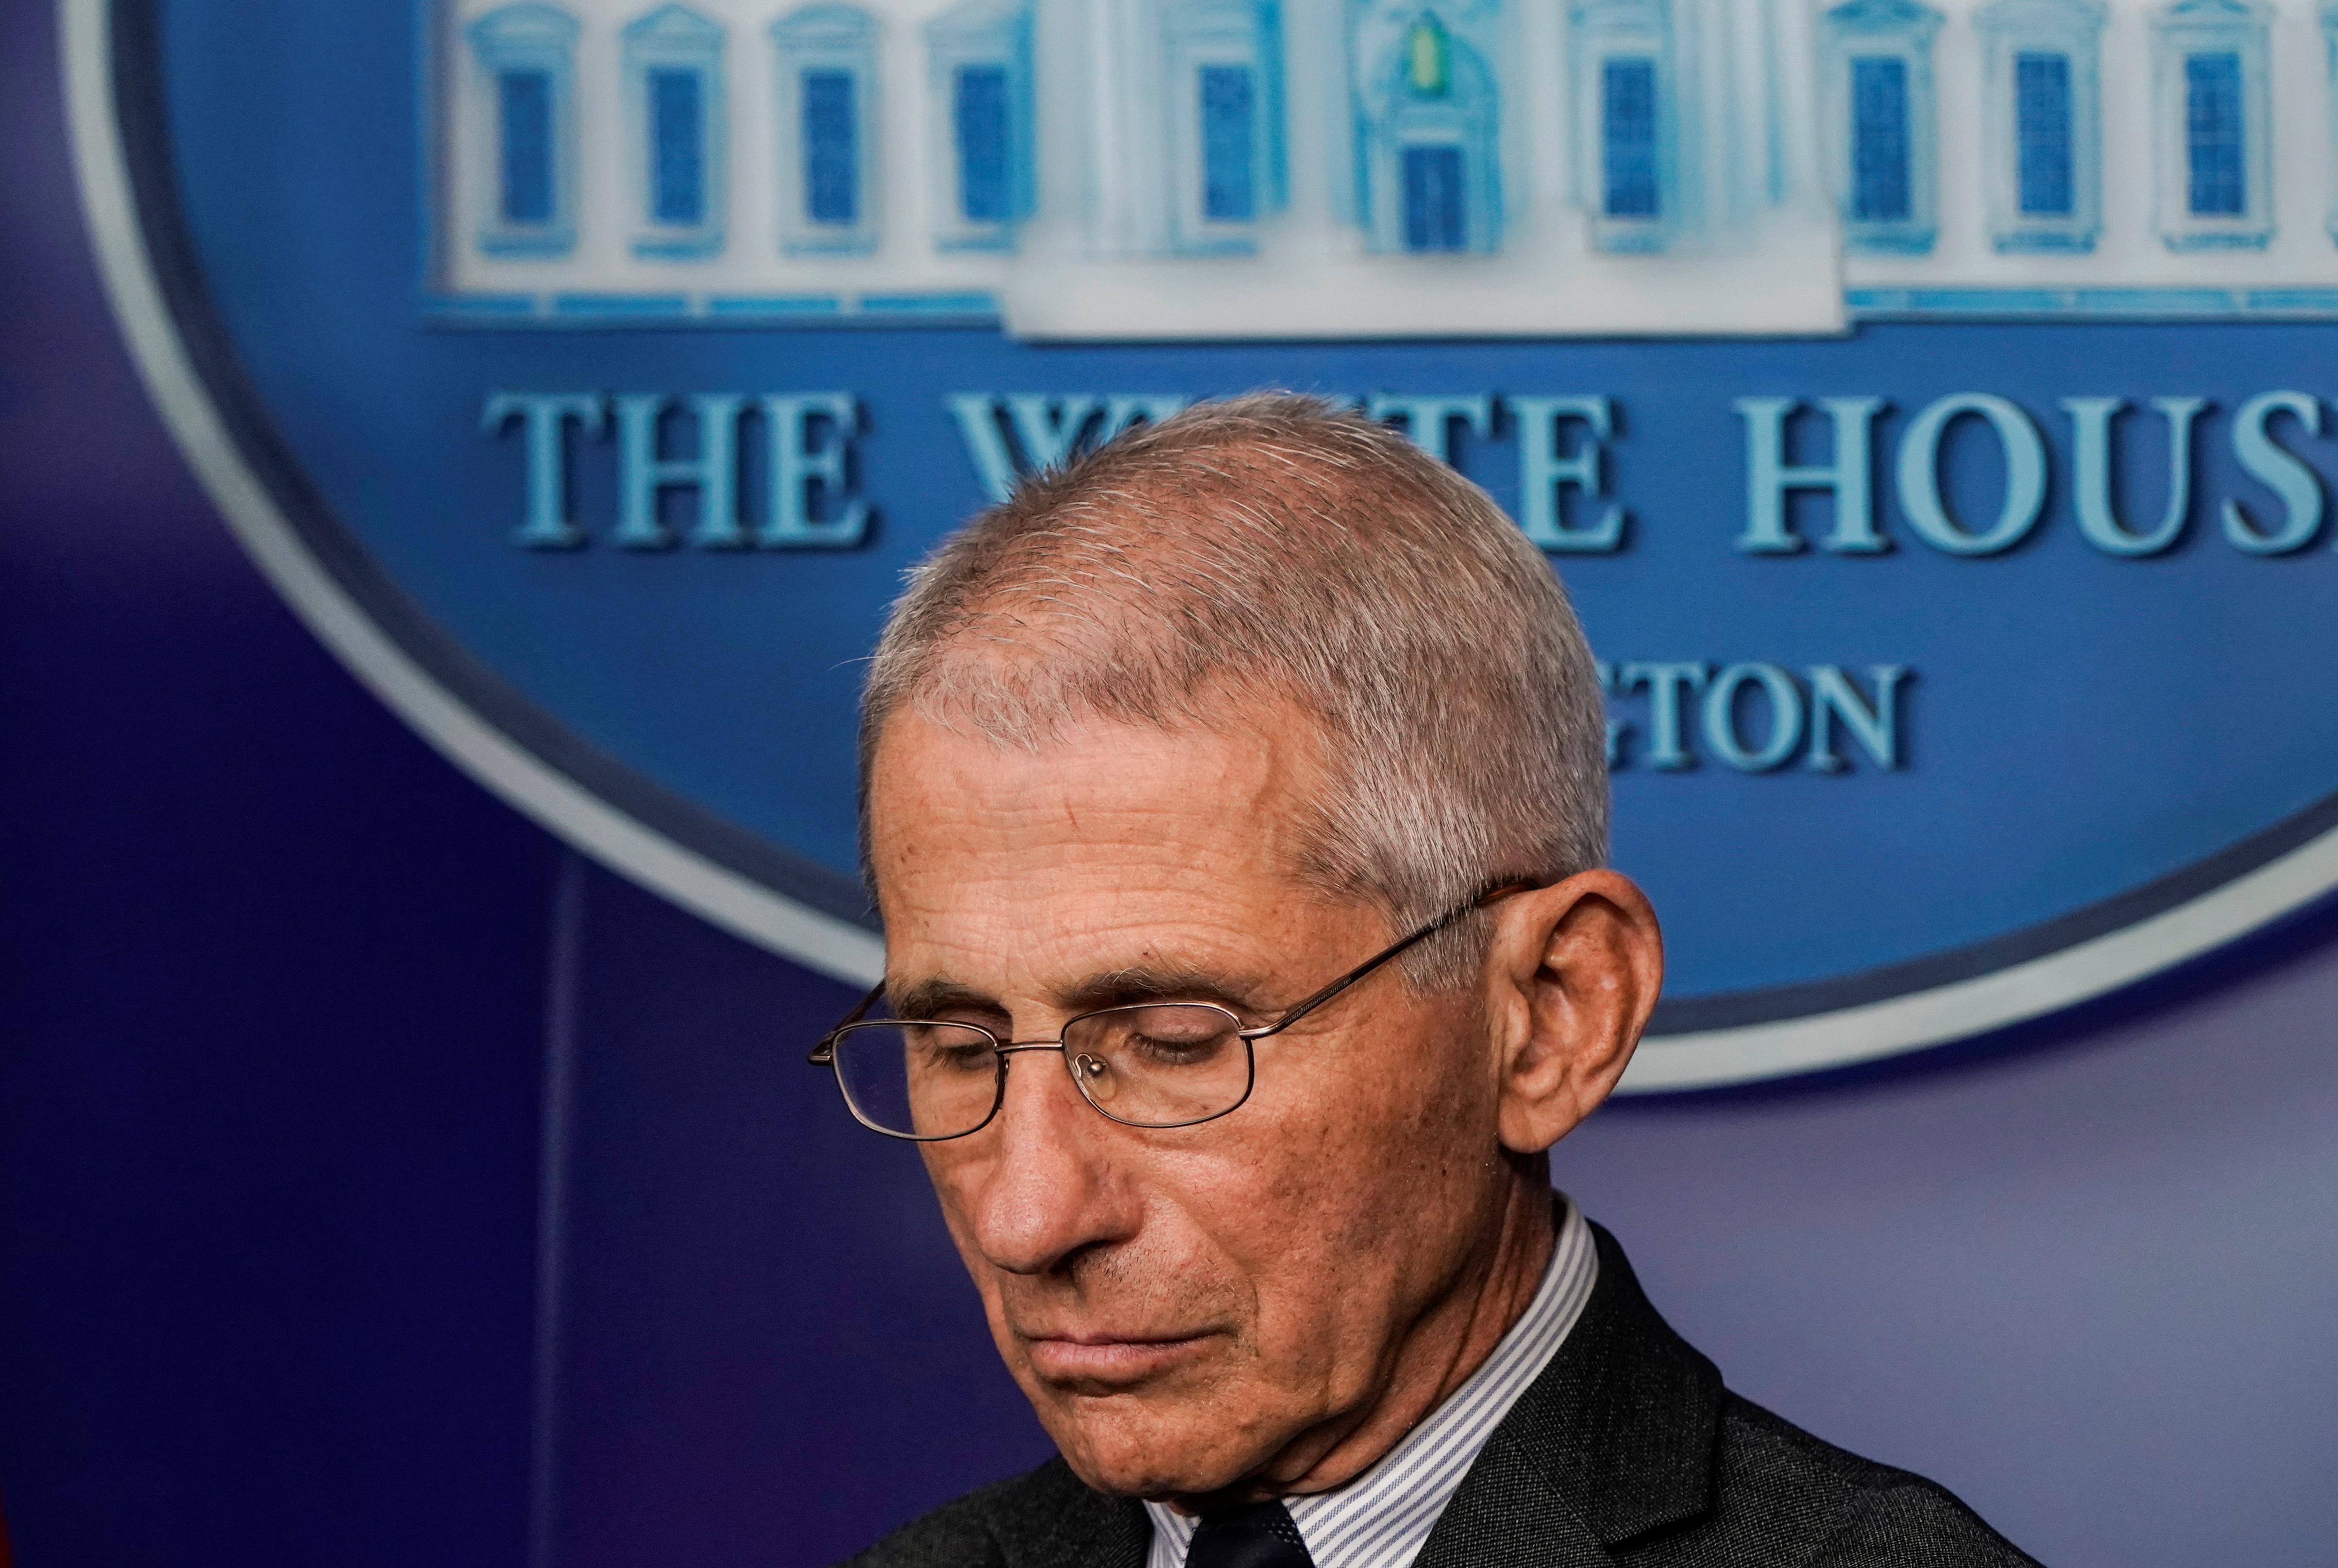 Director of the National Institute of Allergy and Infectious Diseases Anthony Fauci stands during a news briefing on the administration's response to the coronavirus disease (COVID-19) outbreak at the White House in Washington, U.S., March 21, 2020. REUTERS/Joshua Roberts